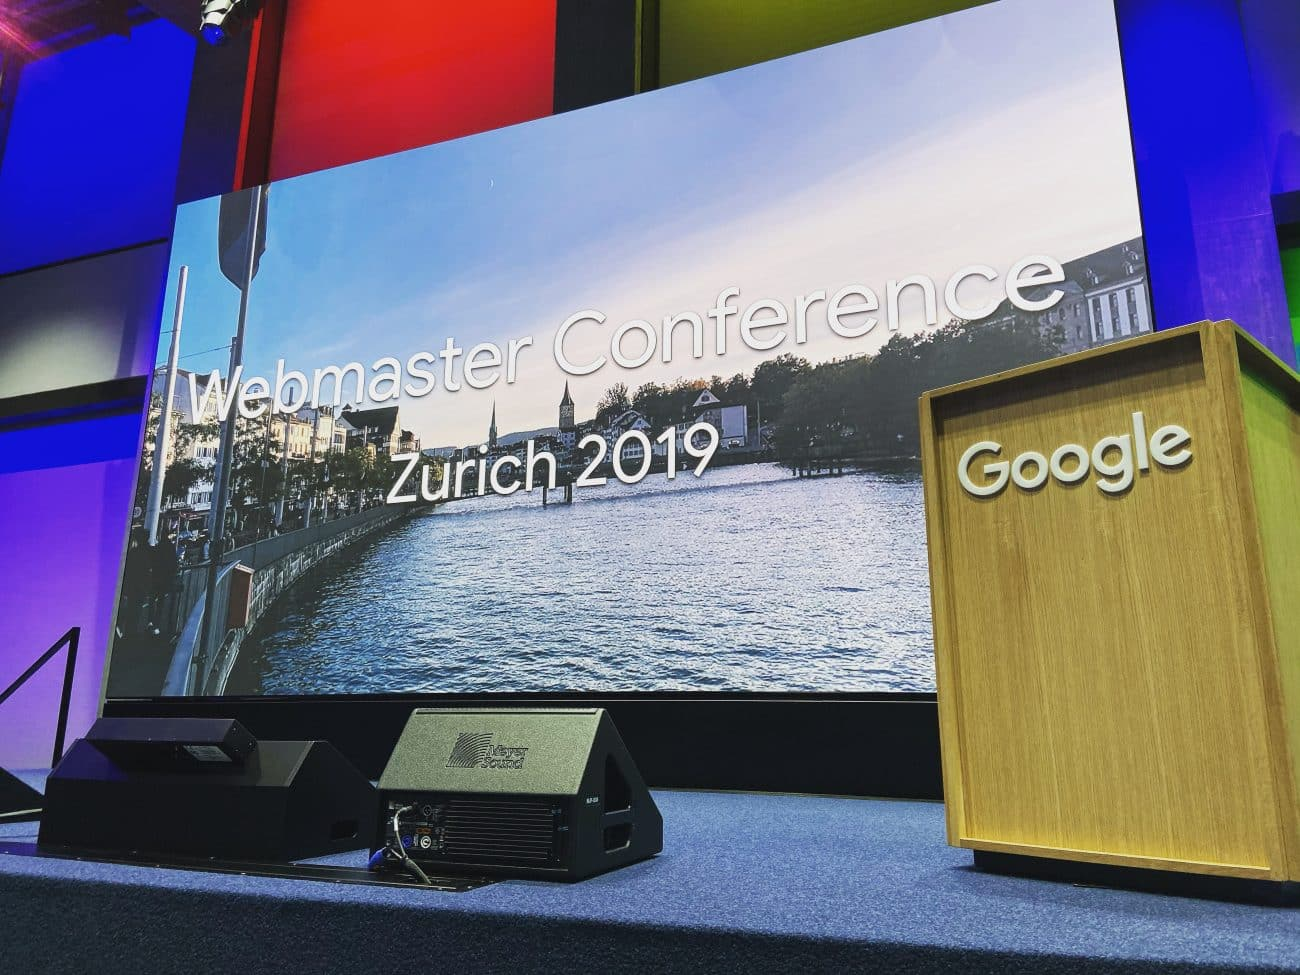 Key takeaways: Google Webmaster Conference, Zurich – Notes #WMCZRH